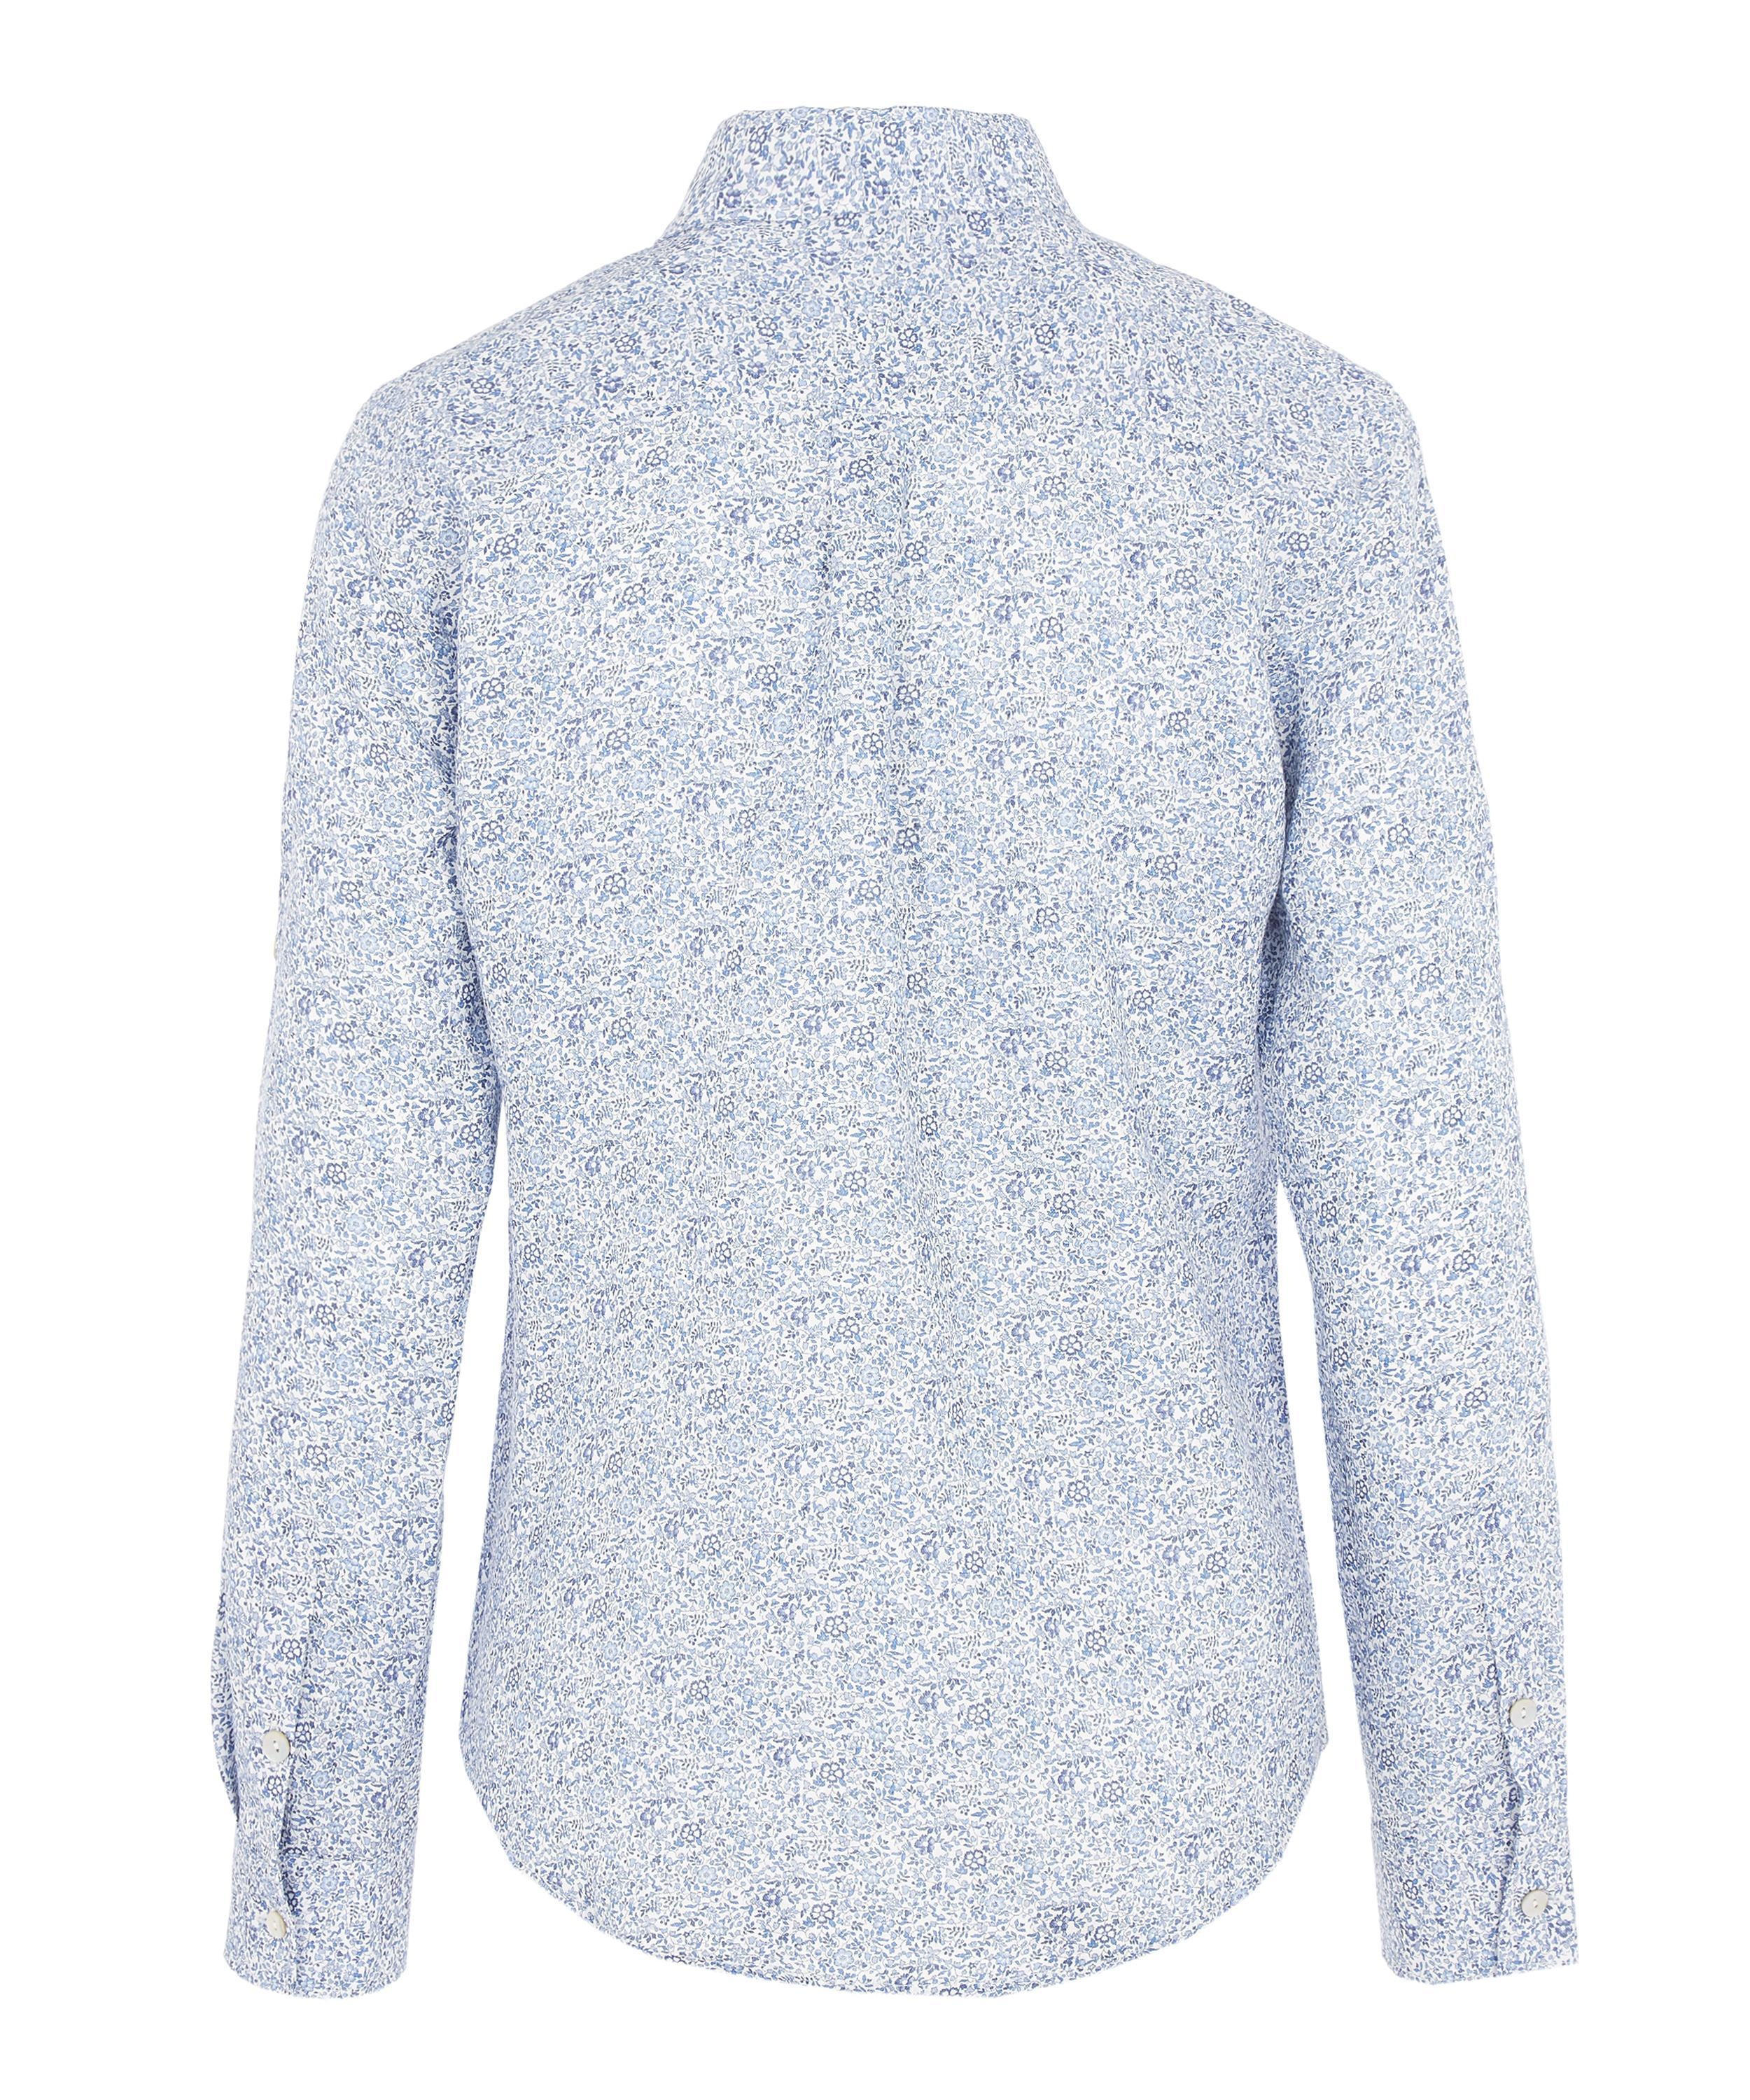 66e05d09f61b7d Liberty Katie And Millie Women's Linen Bryony Shirt in Blue - Lyst